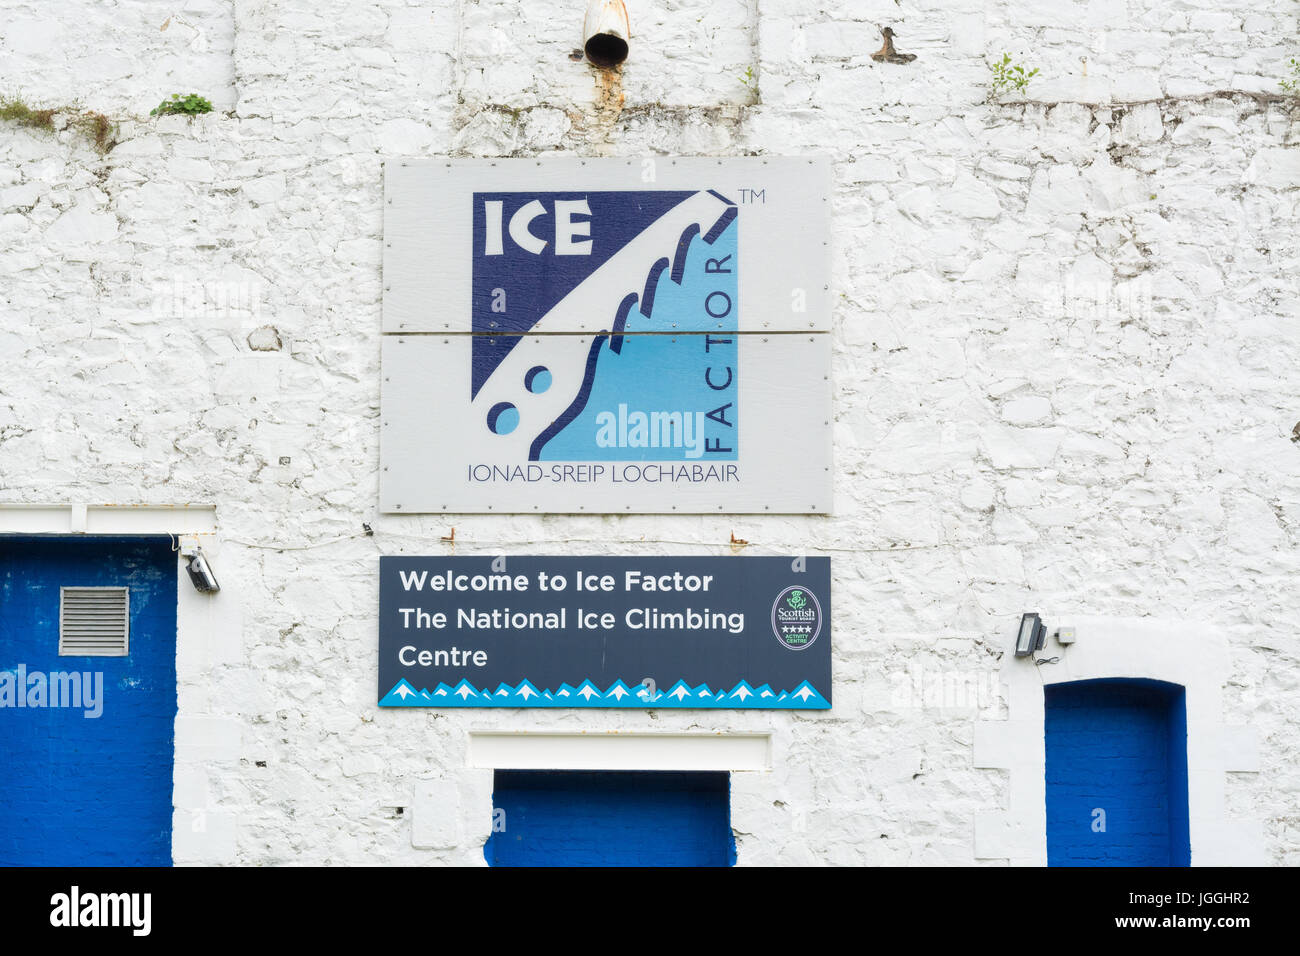 The Ice Factor National Ice Climbing Centre, Kinlochleven, Highland, Scotland, UK - Stock Image